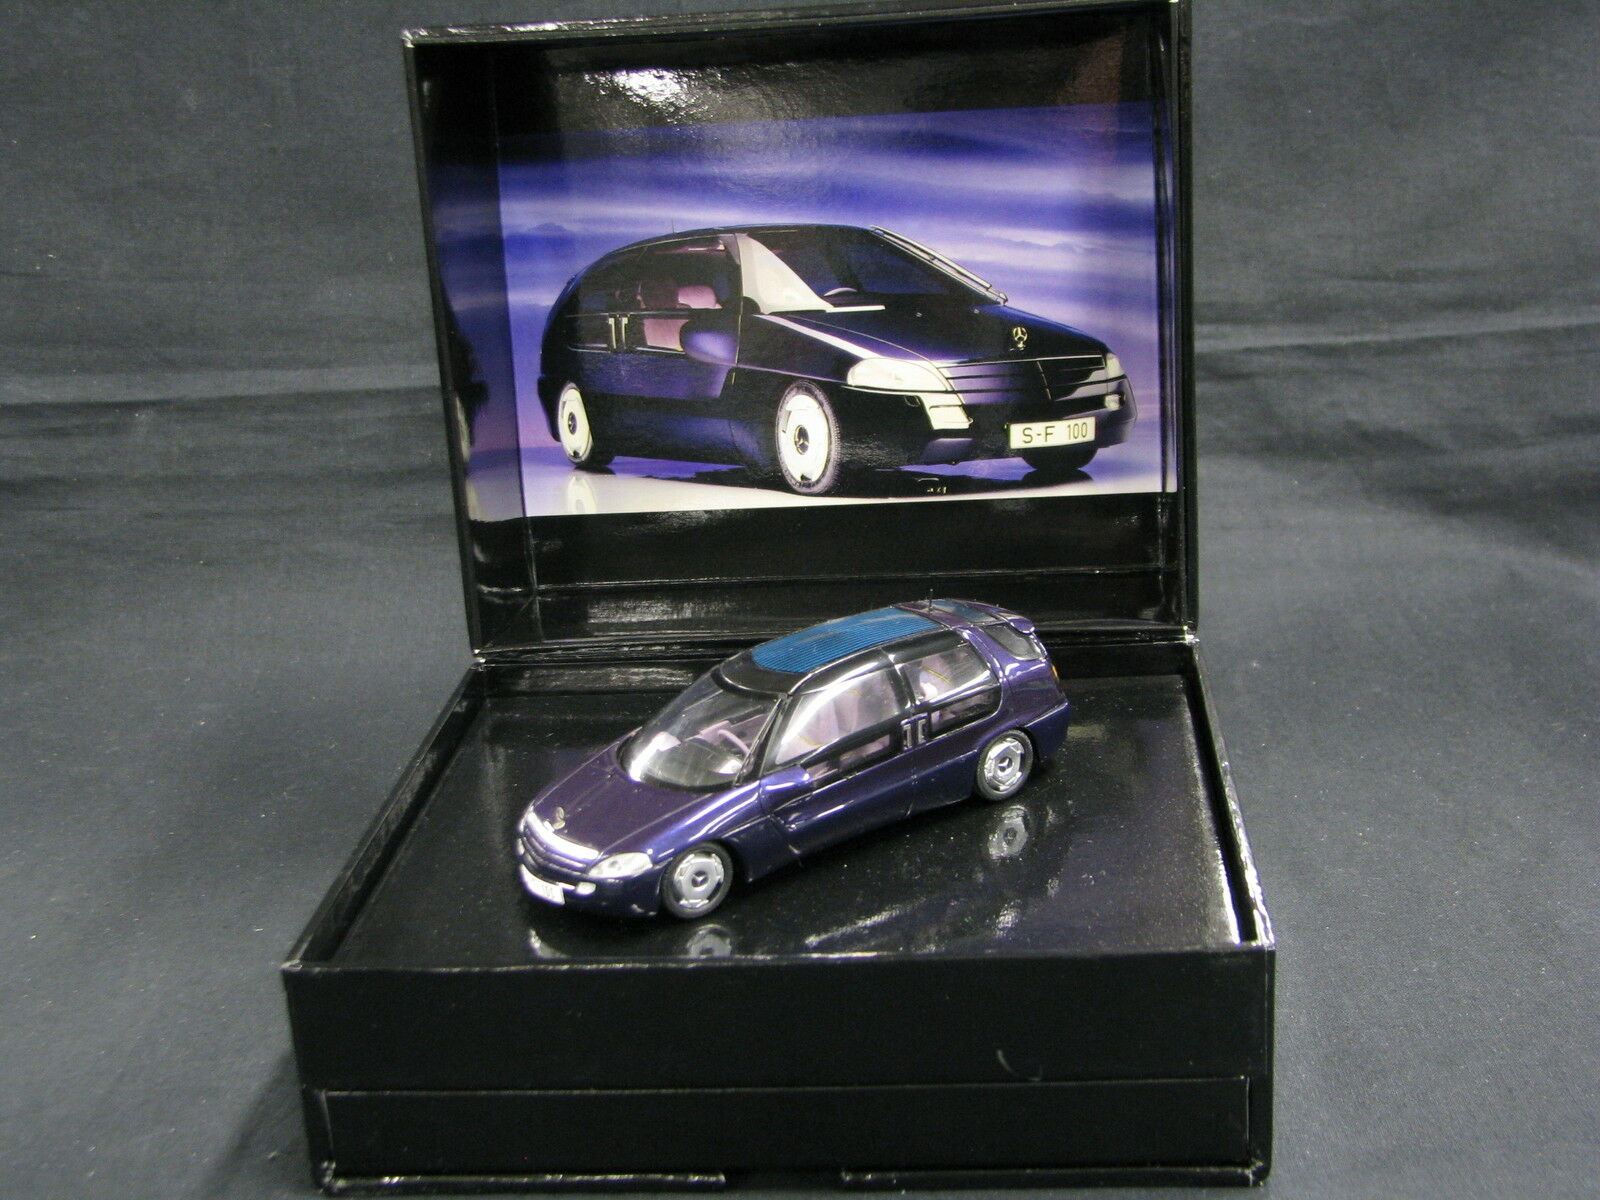 Spark Mercedes-Benz F100 Concept Car 1991 1 43 Purple Metallic (JS)